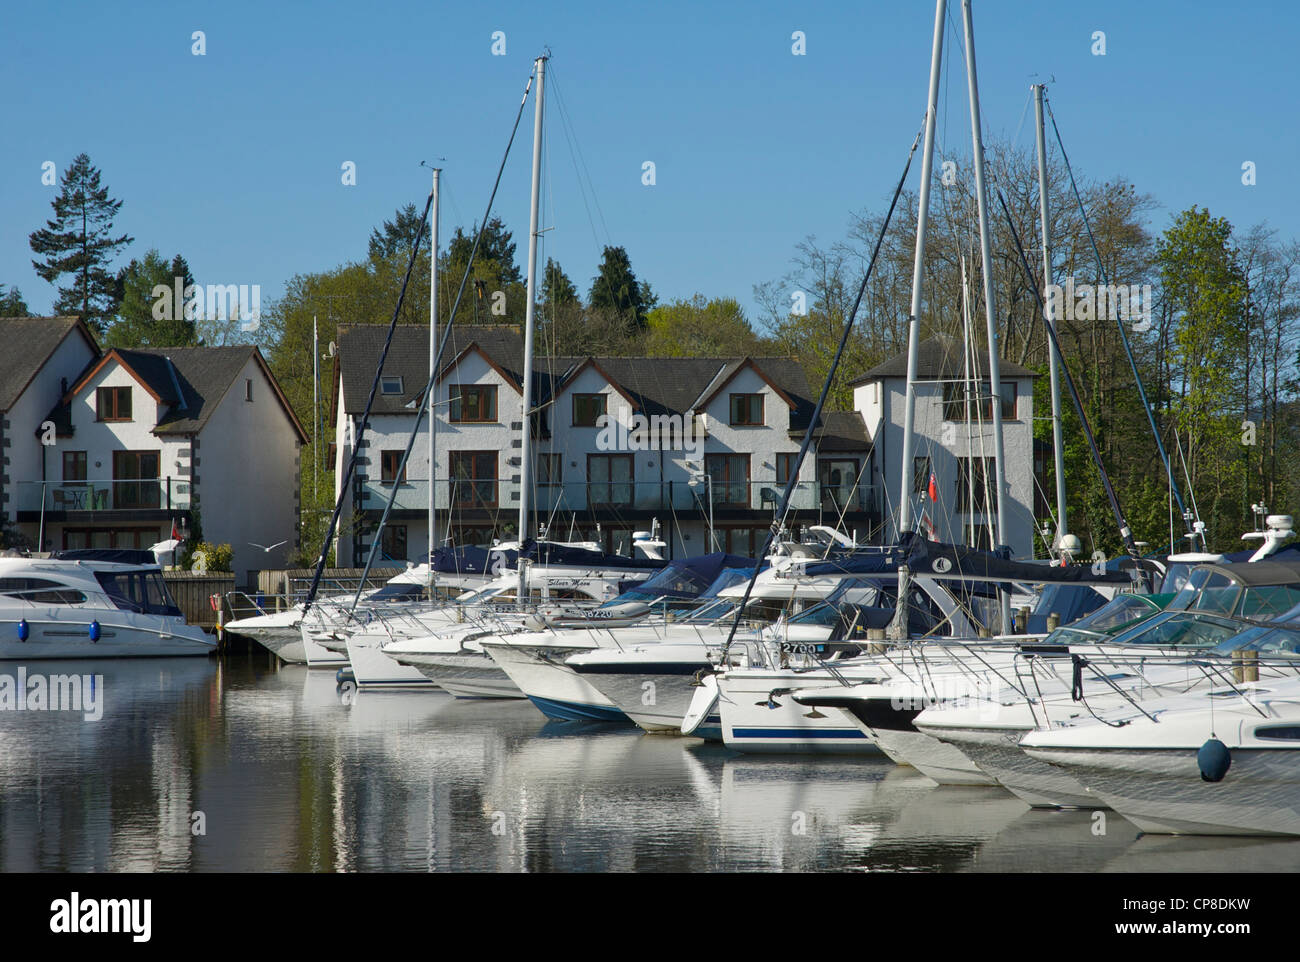 Boats moored in the Windermere Marina, near Bowness, Lake District National Park, Cumbria, England UK Stock Photo